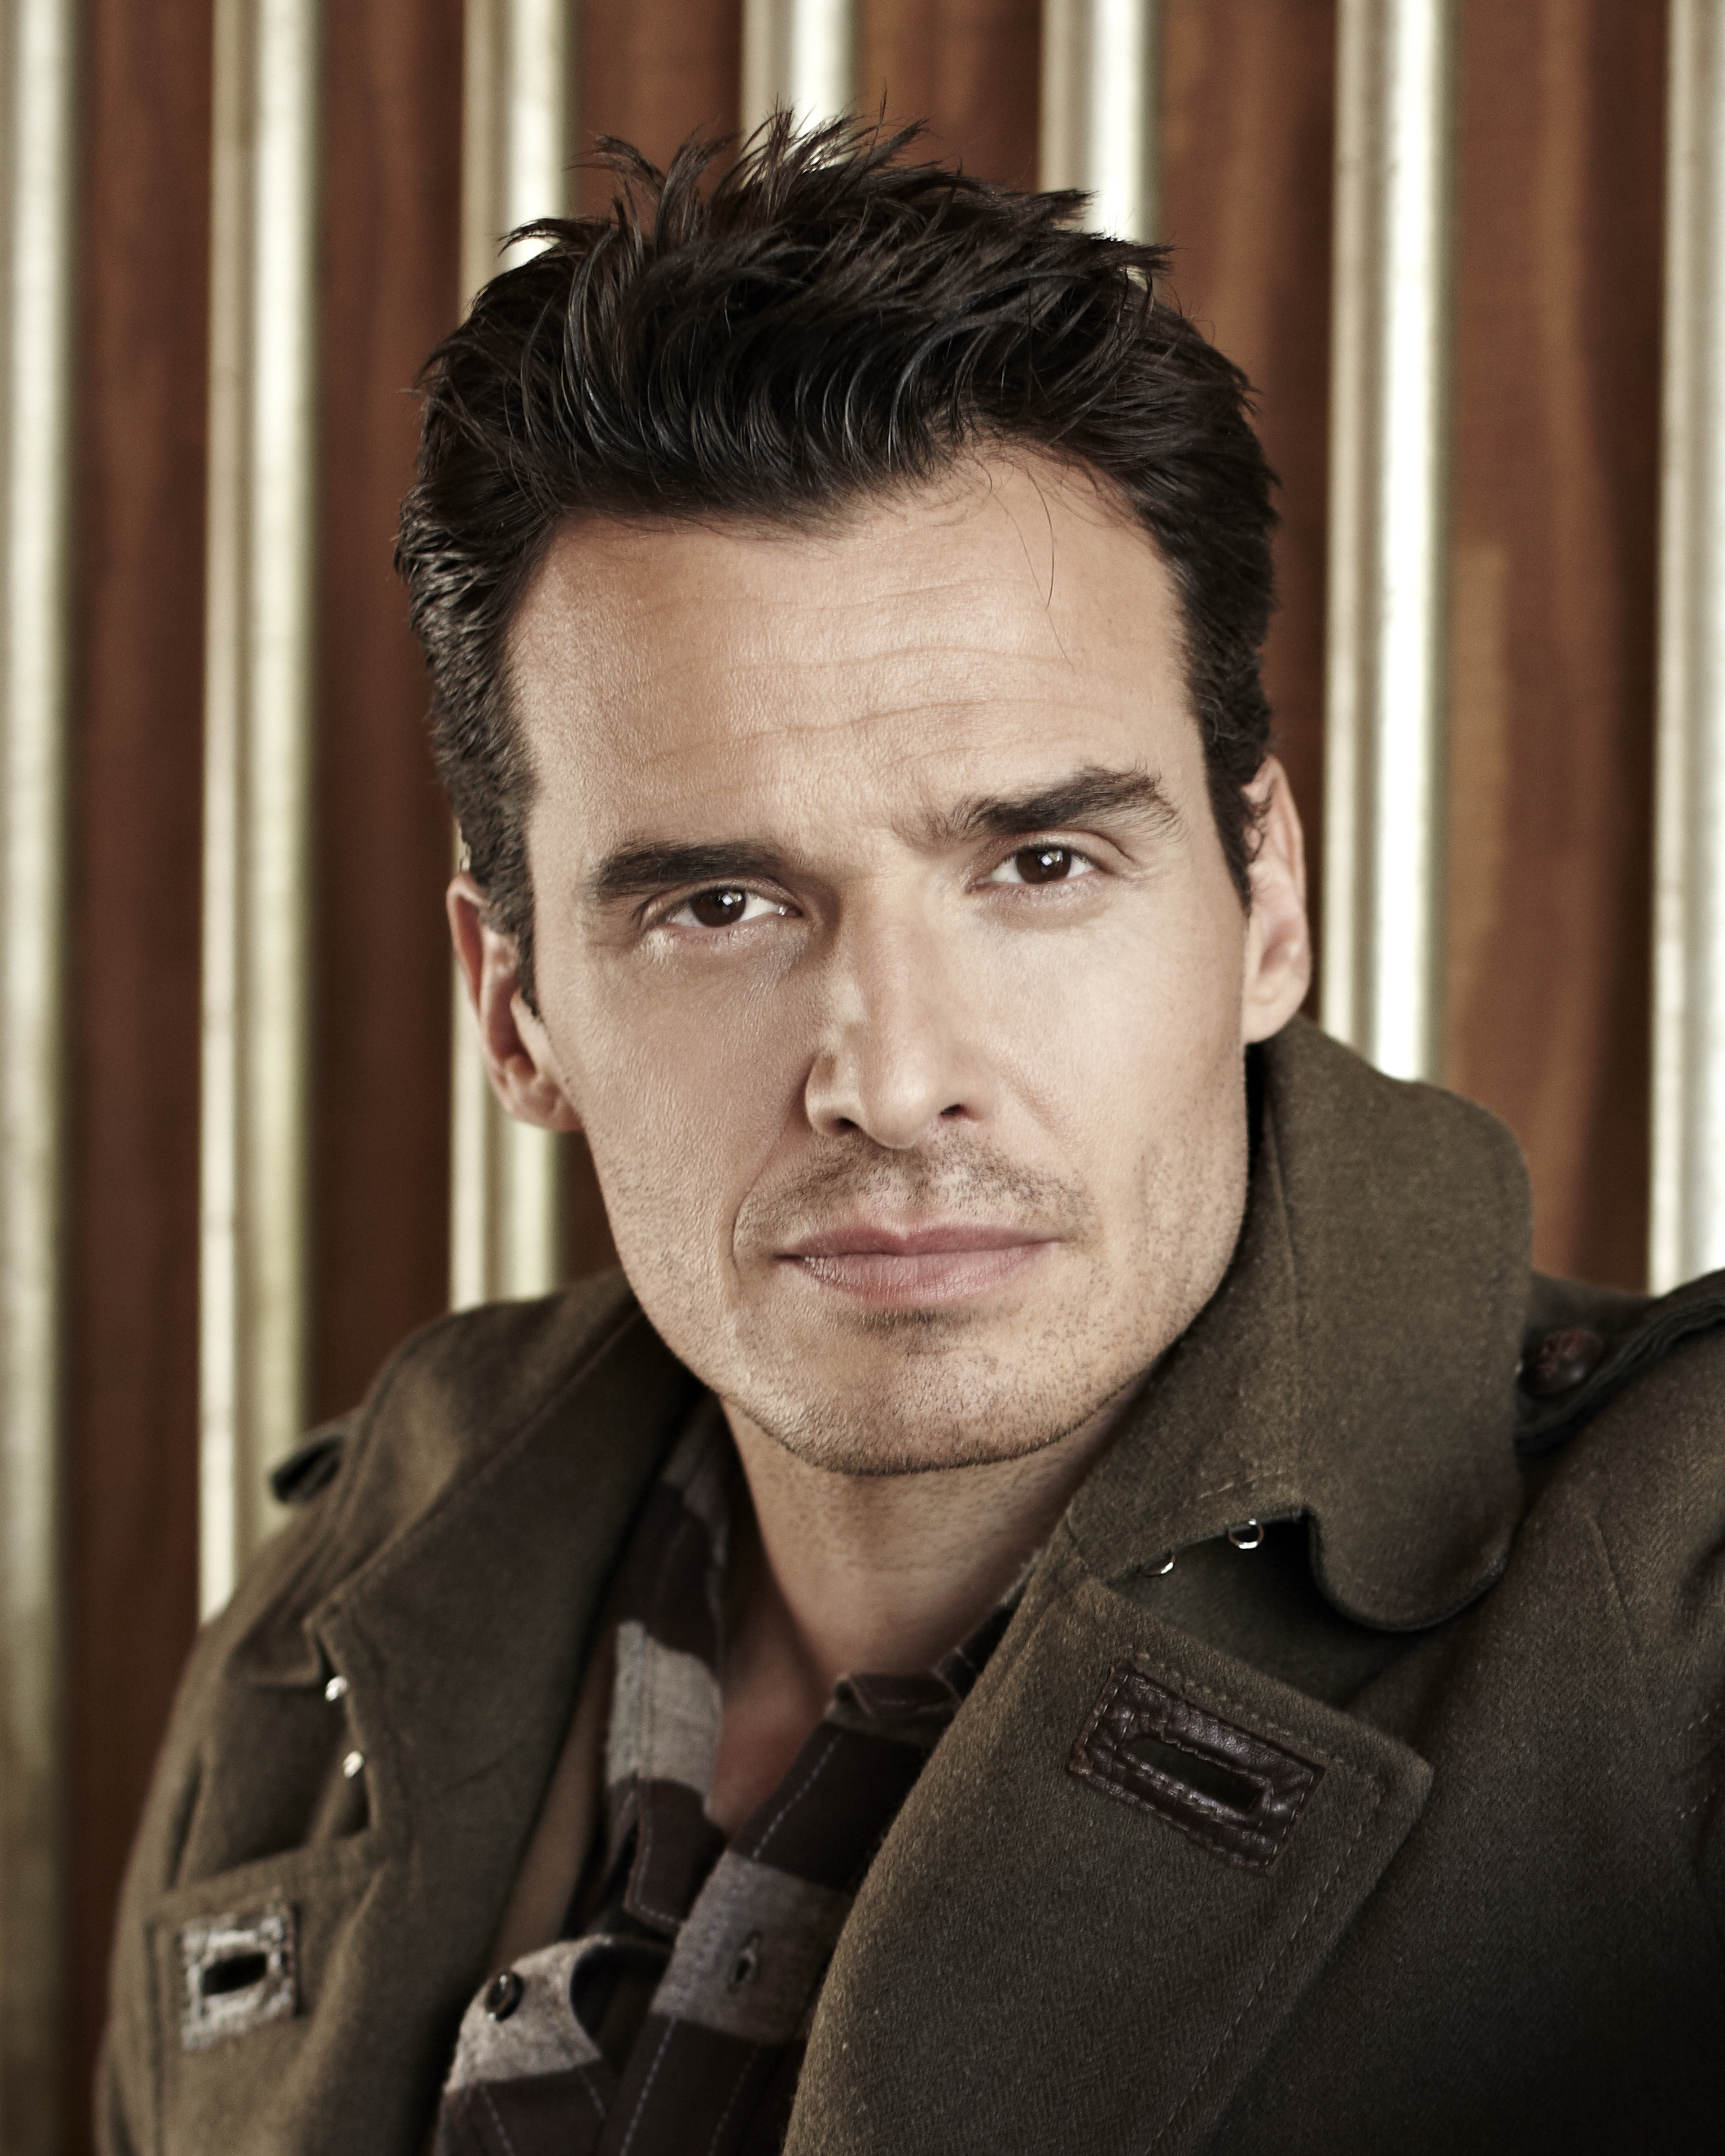 20111130 ANTONIO SABATO JR 1900 HEADSHOT Exclusive Interview: Antonio Sabàto, Jr. Talks AnastasiaDate.com